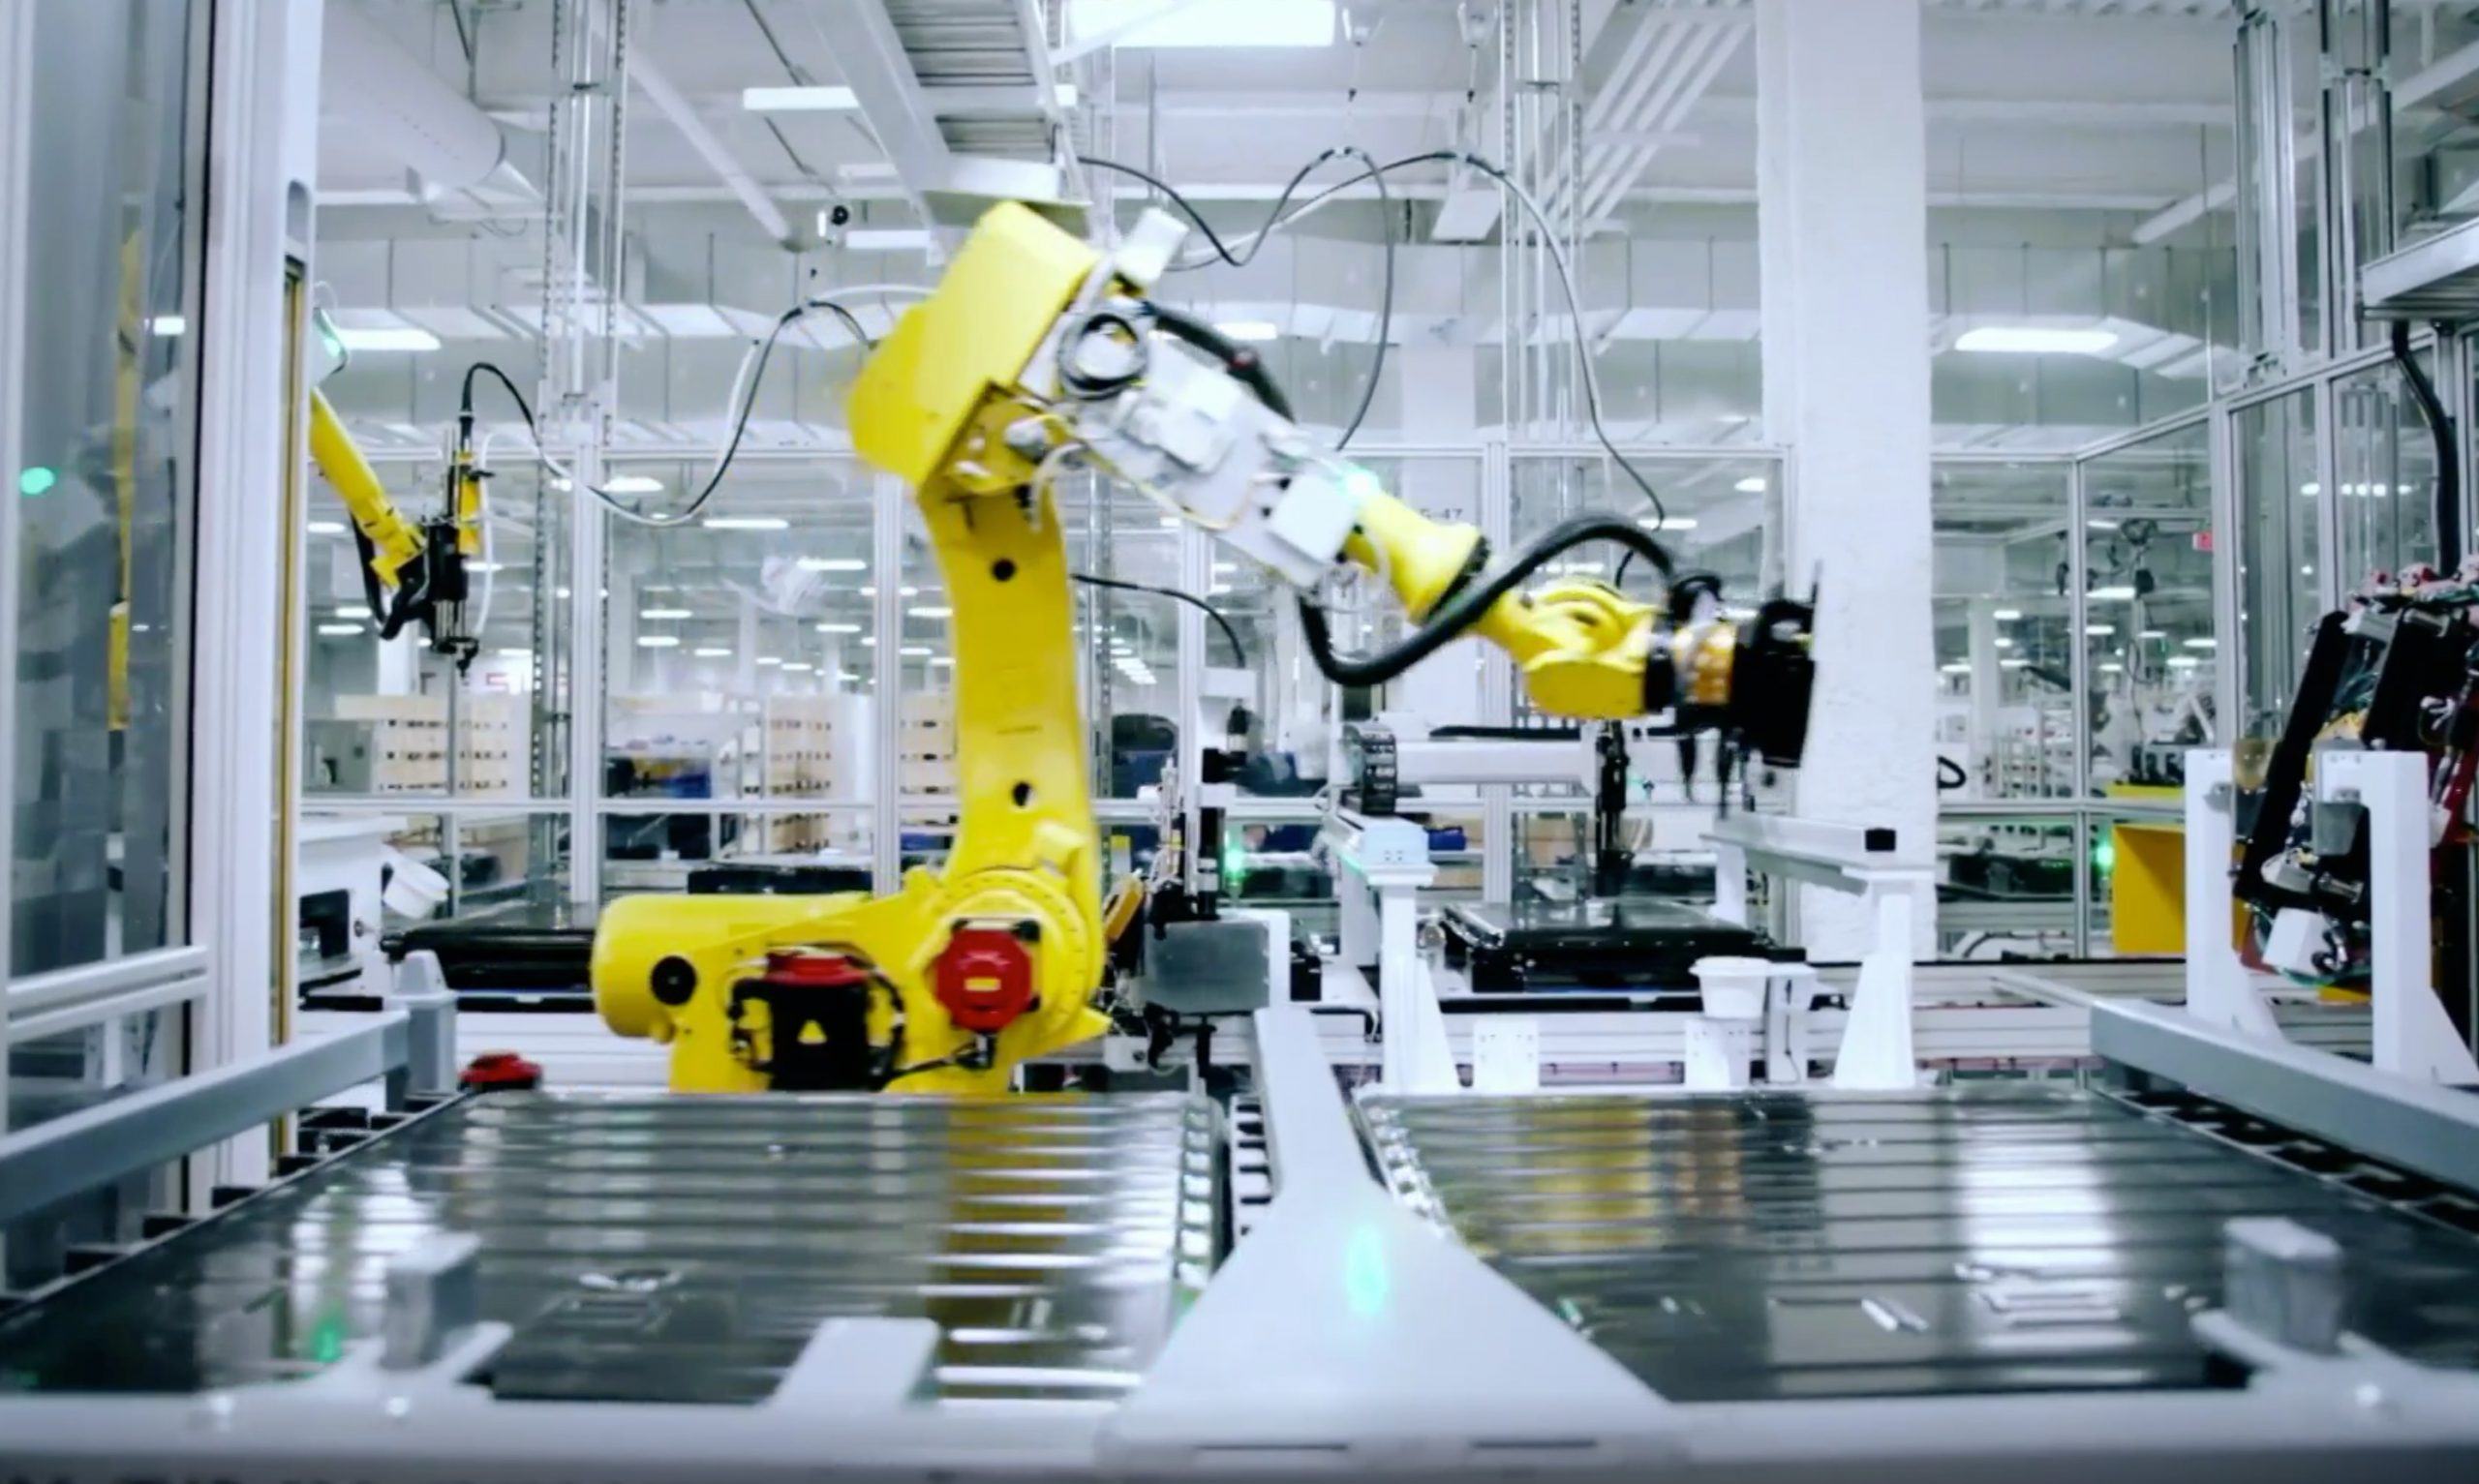 TESLA GIGAFACTORY NEVADA BATTERY CELL PRODUCTION LINE (CREDIT: SUPER FACTORIES)